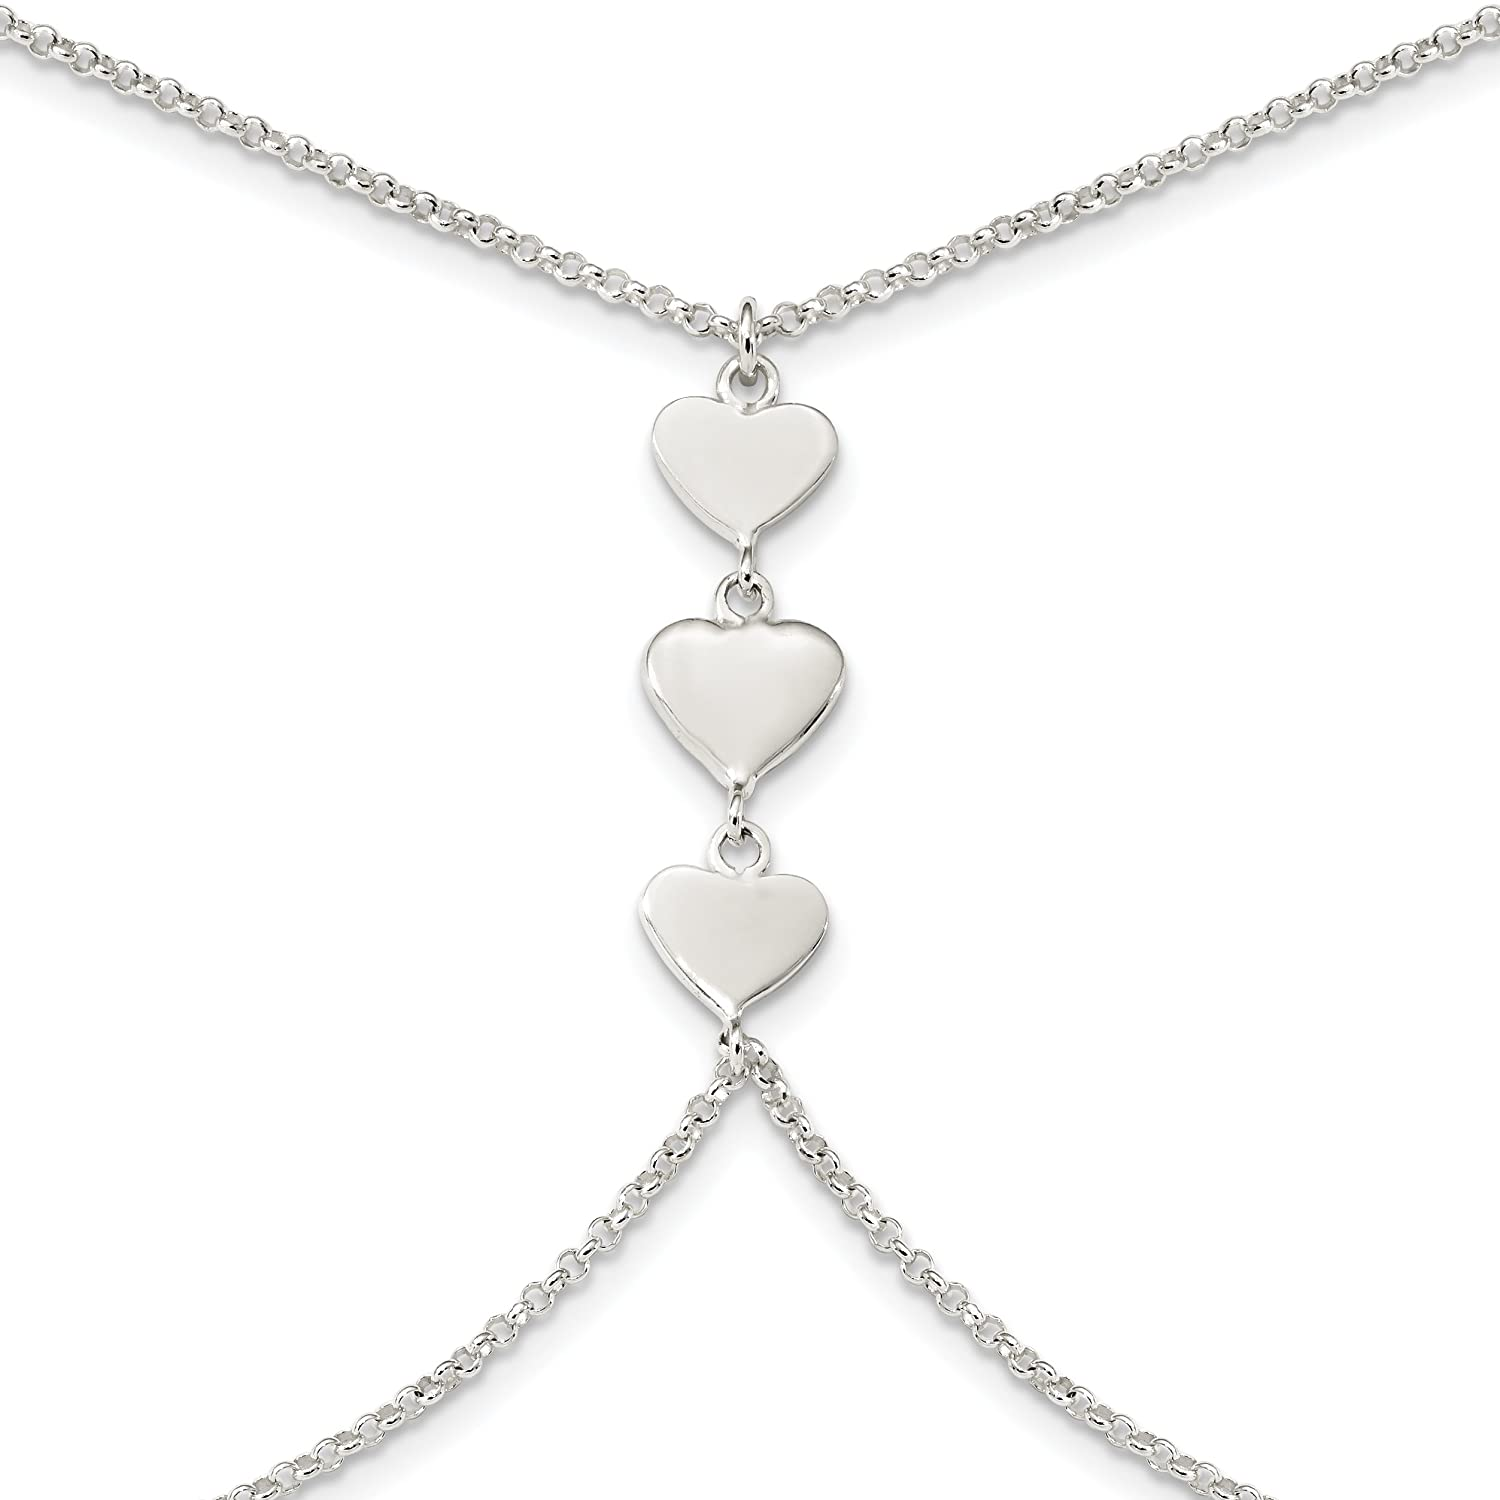 925 Sterling Silver Polished Heart 32in 2in ext Body Chain Necklace